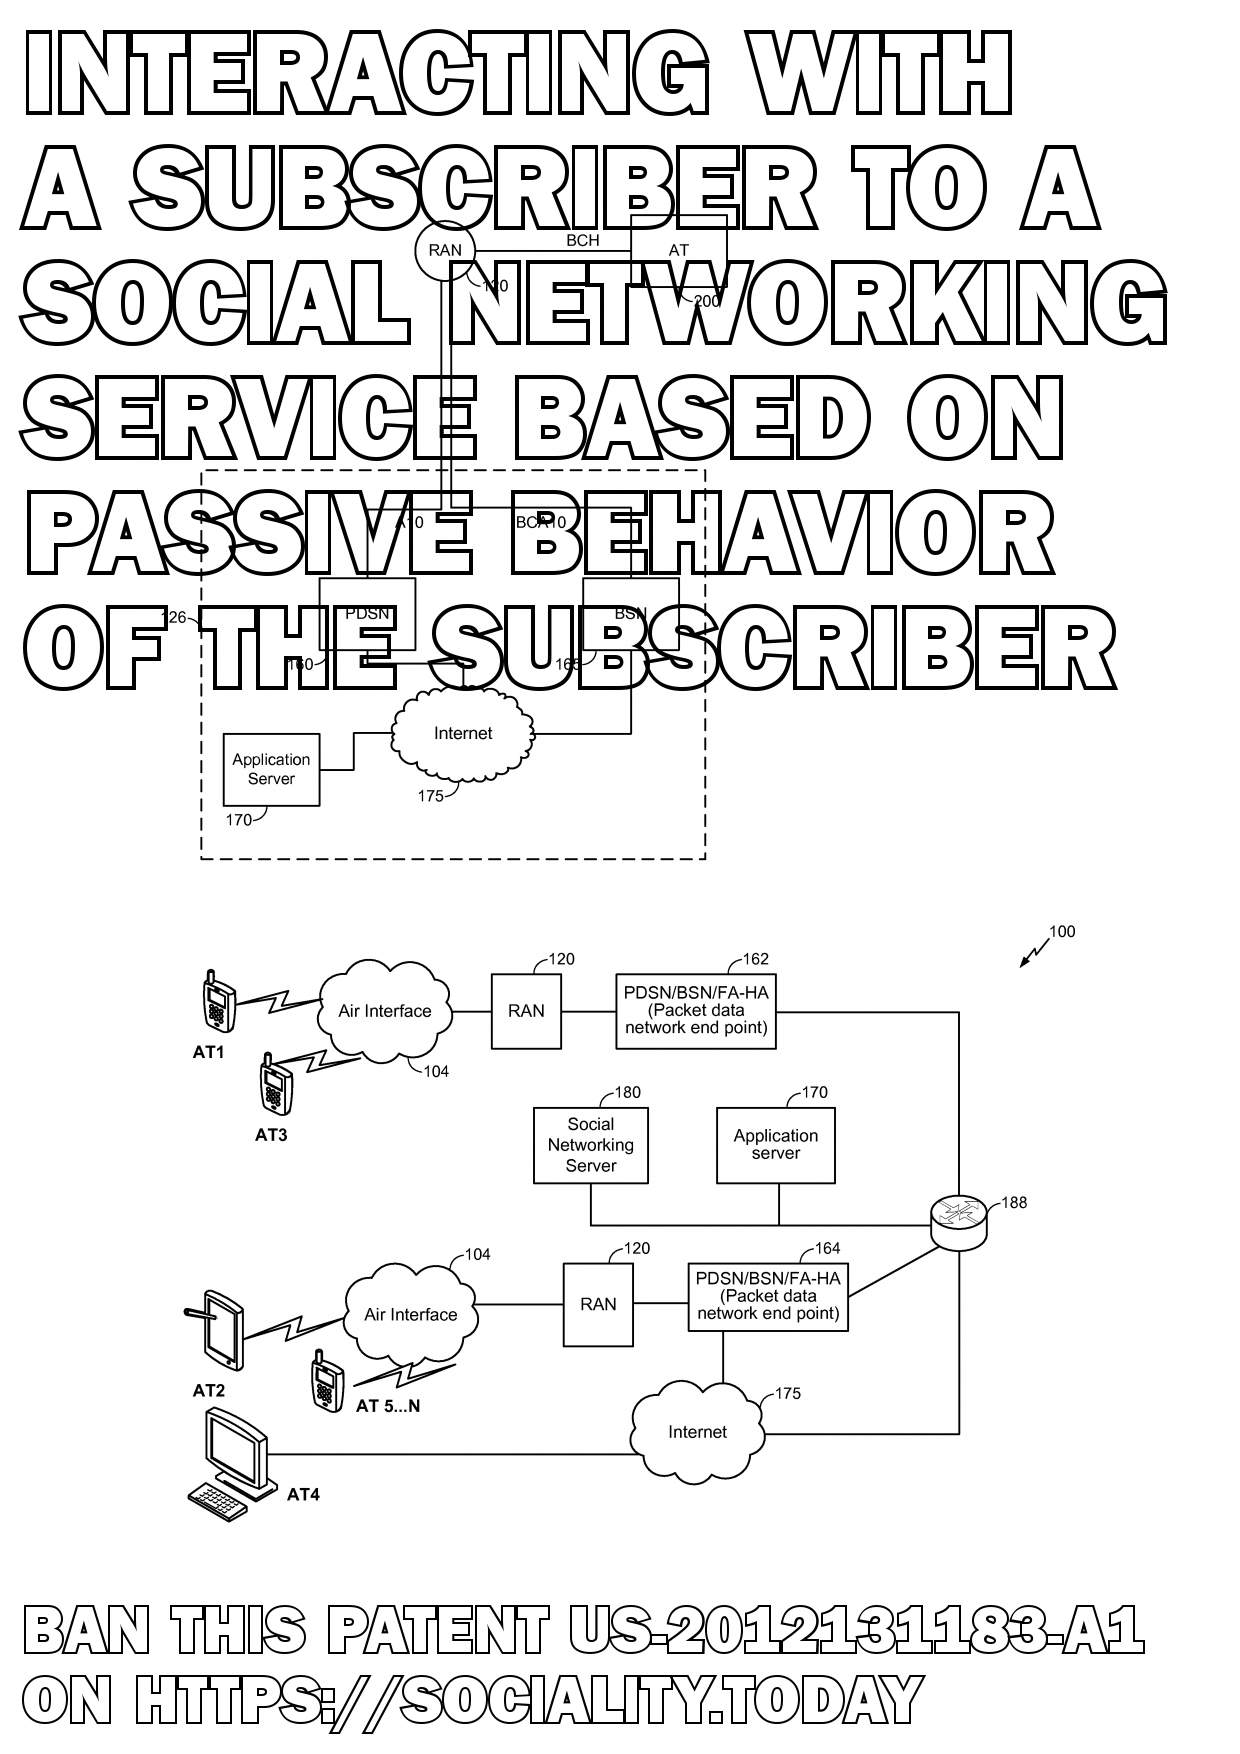 Interacting with a subscriber to a social networking service based on passive behavior of the subscriber  - US-2012131183-A1